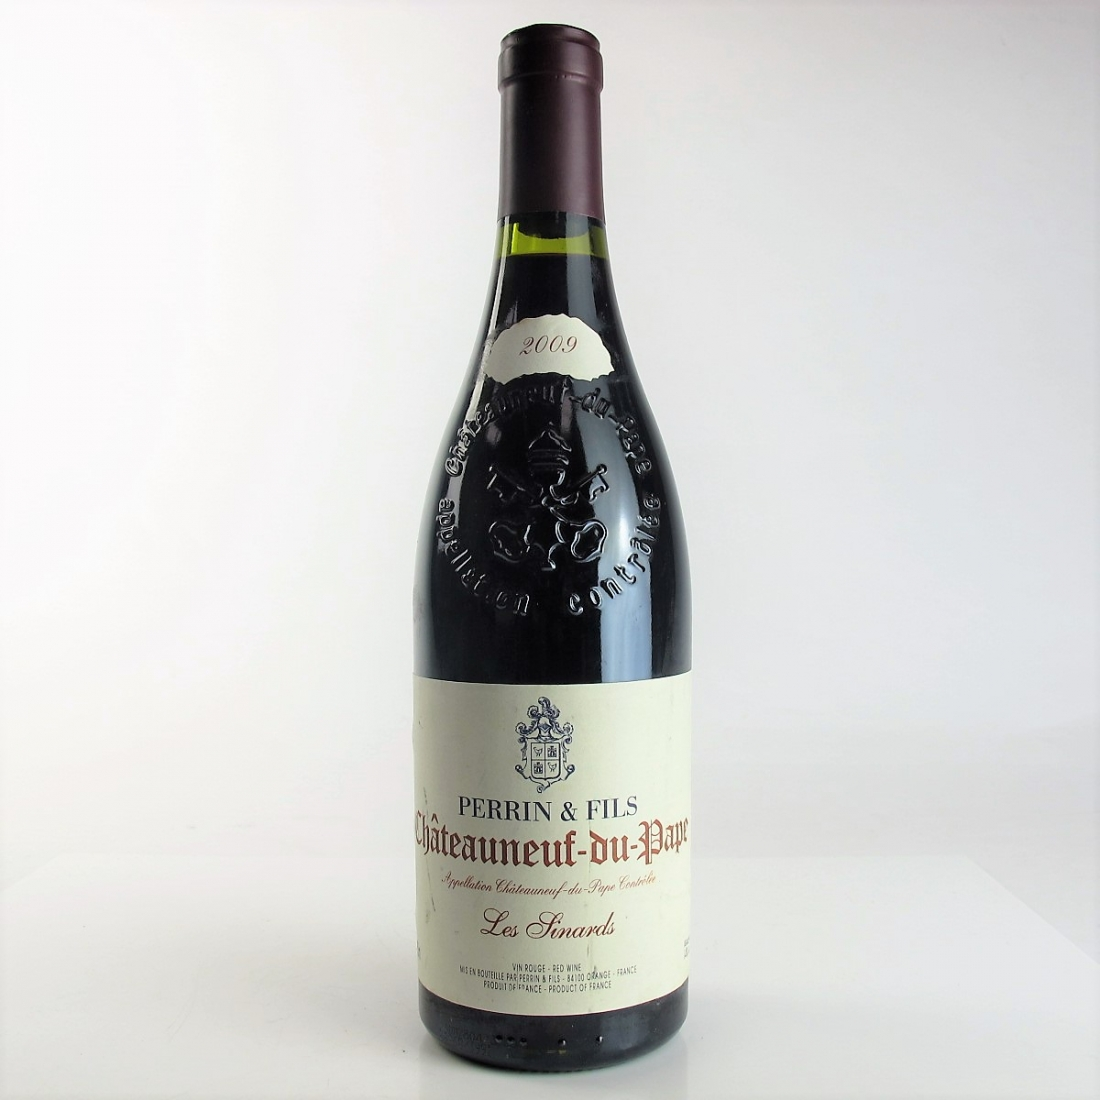 "Perrin ""Les Sinards"" 2009 Chateauneuf-Du-Pape"